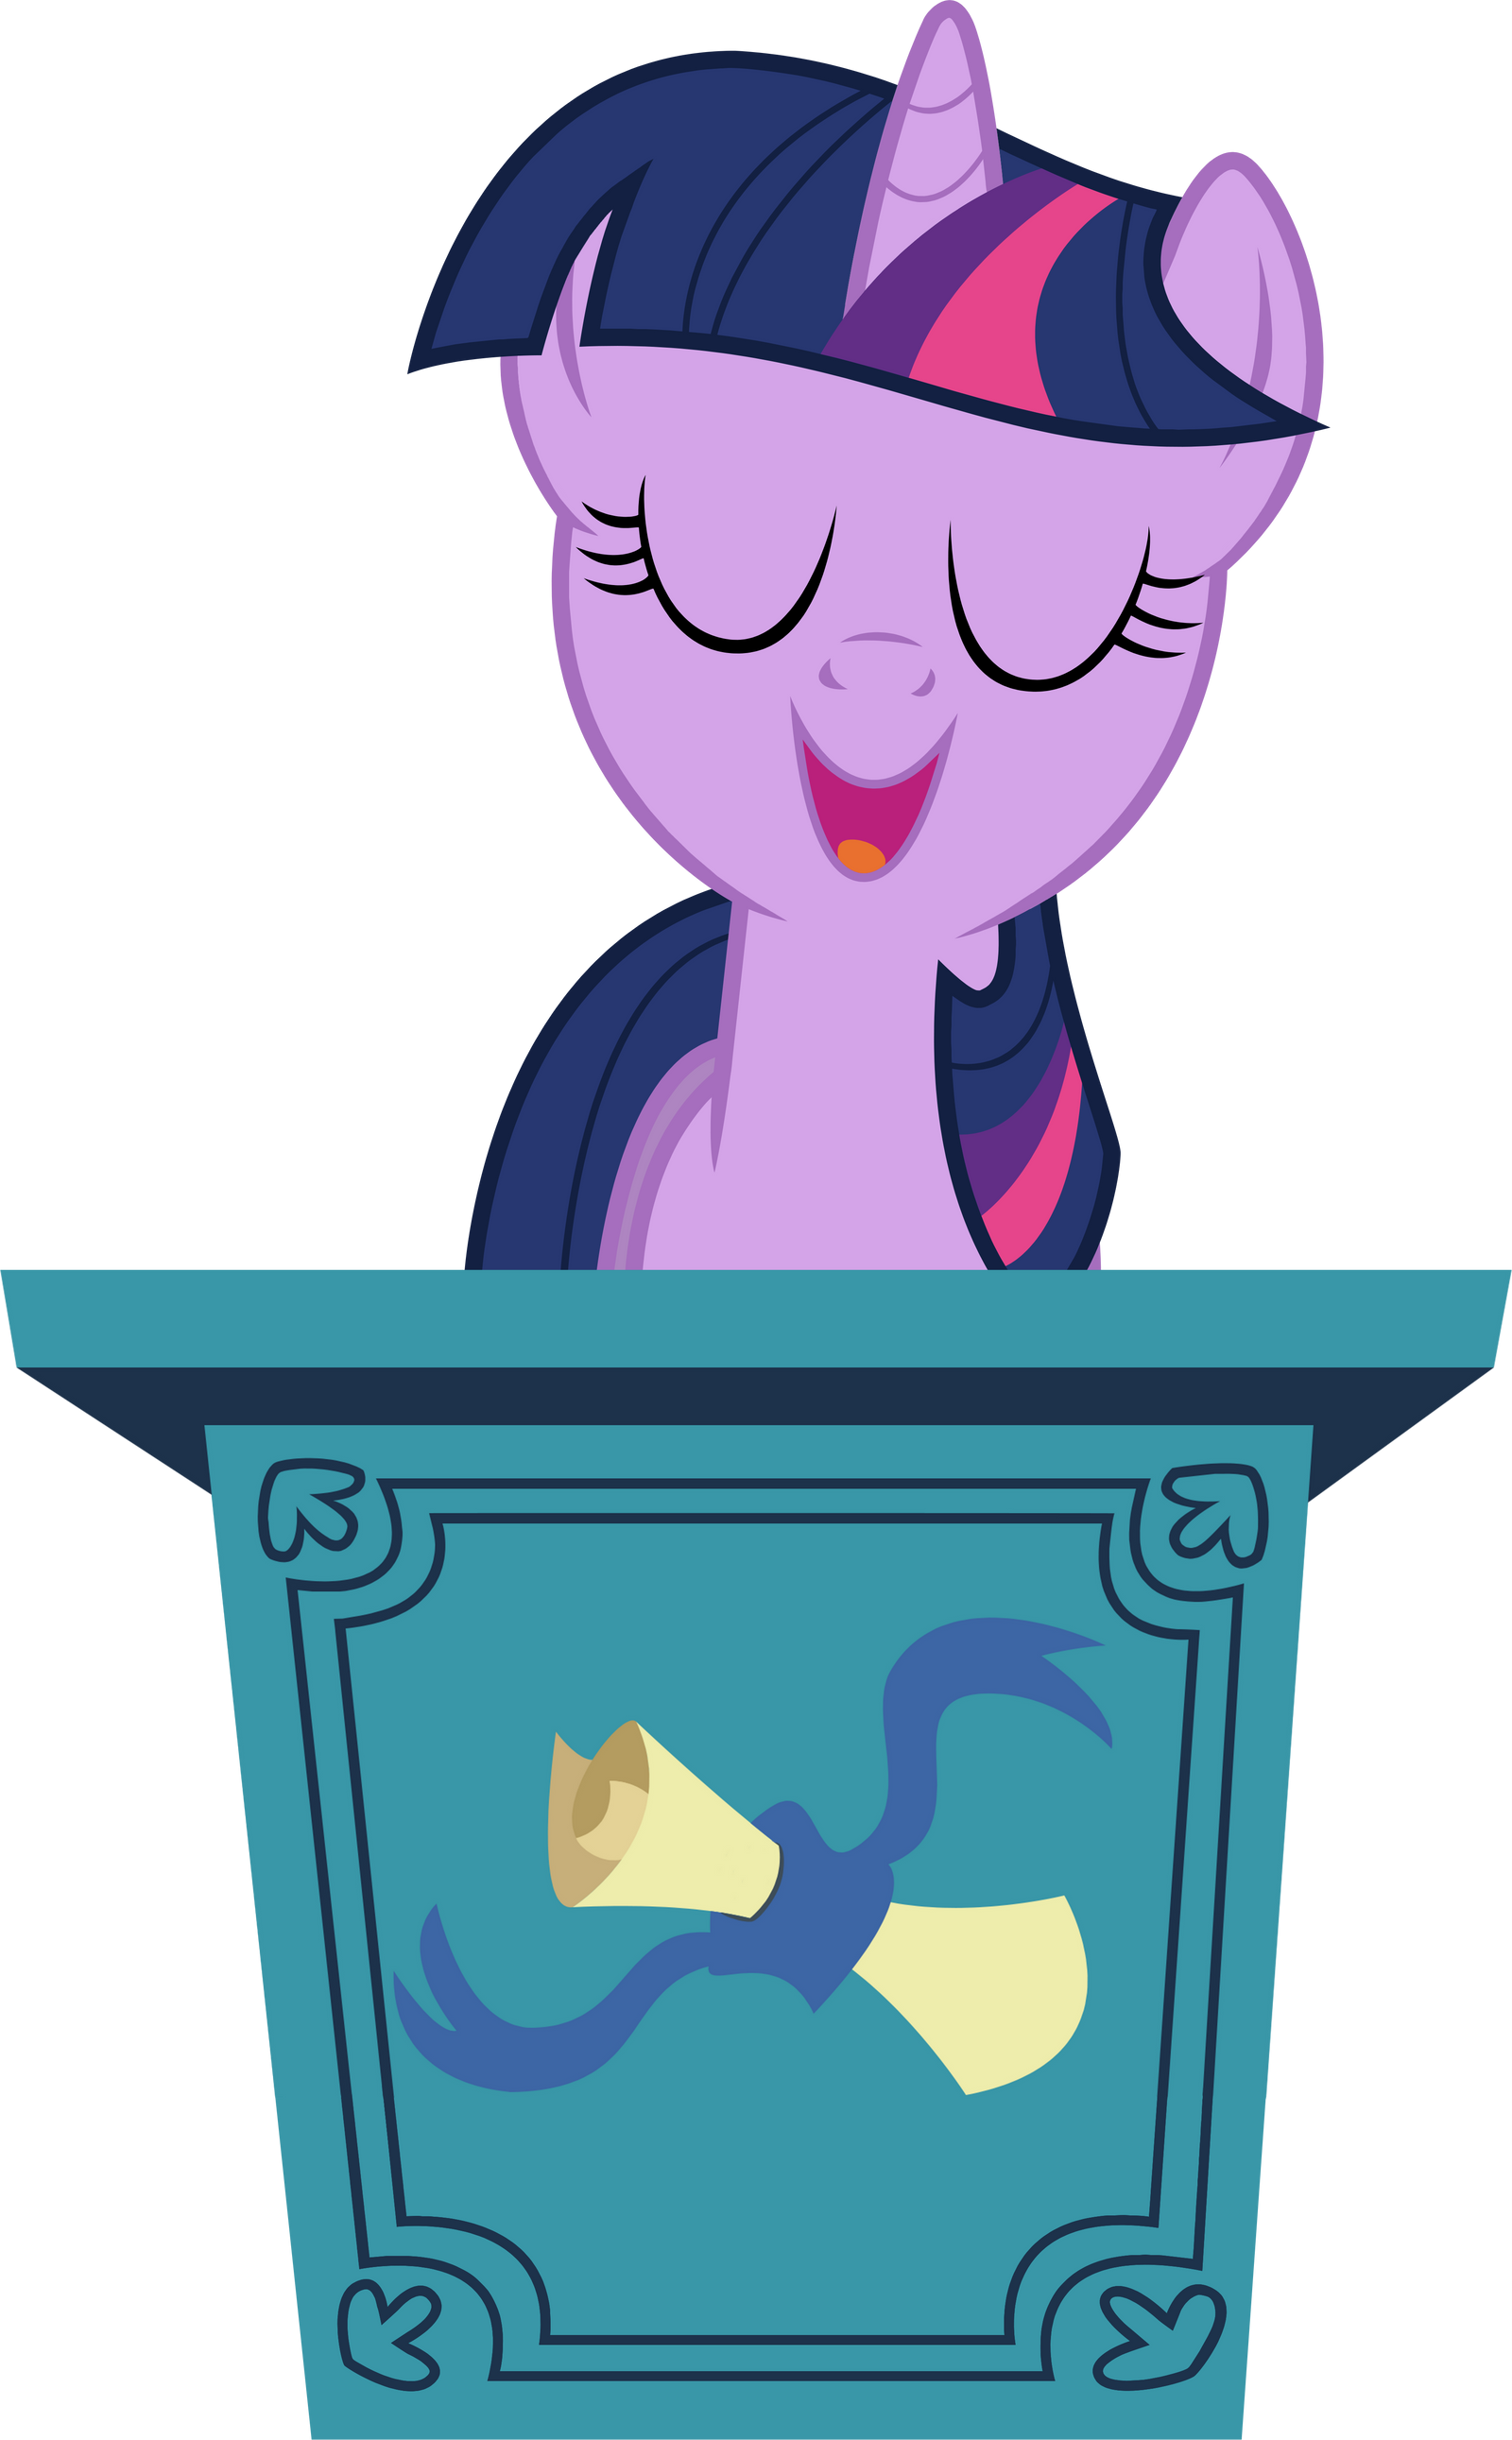 [Obrazek: podium___twilight_sparkle_by_tomfraggle-d7xc6wu.png]